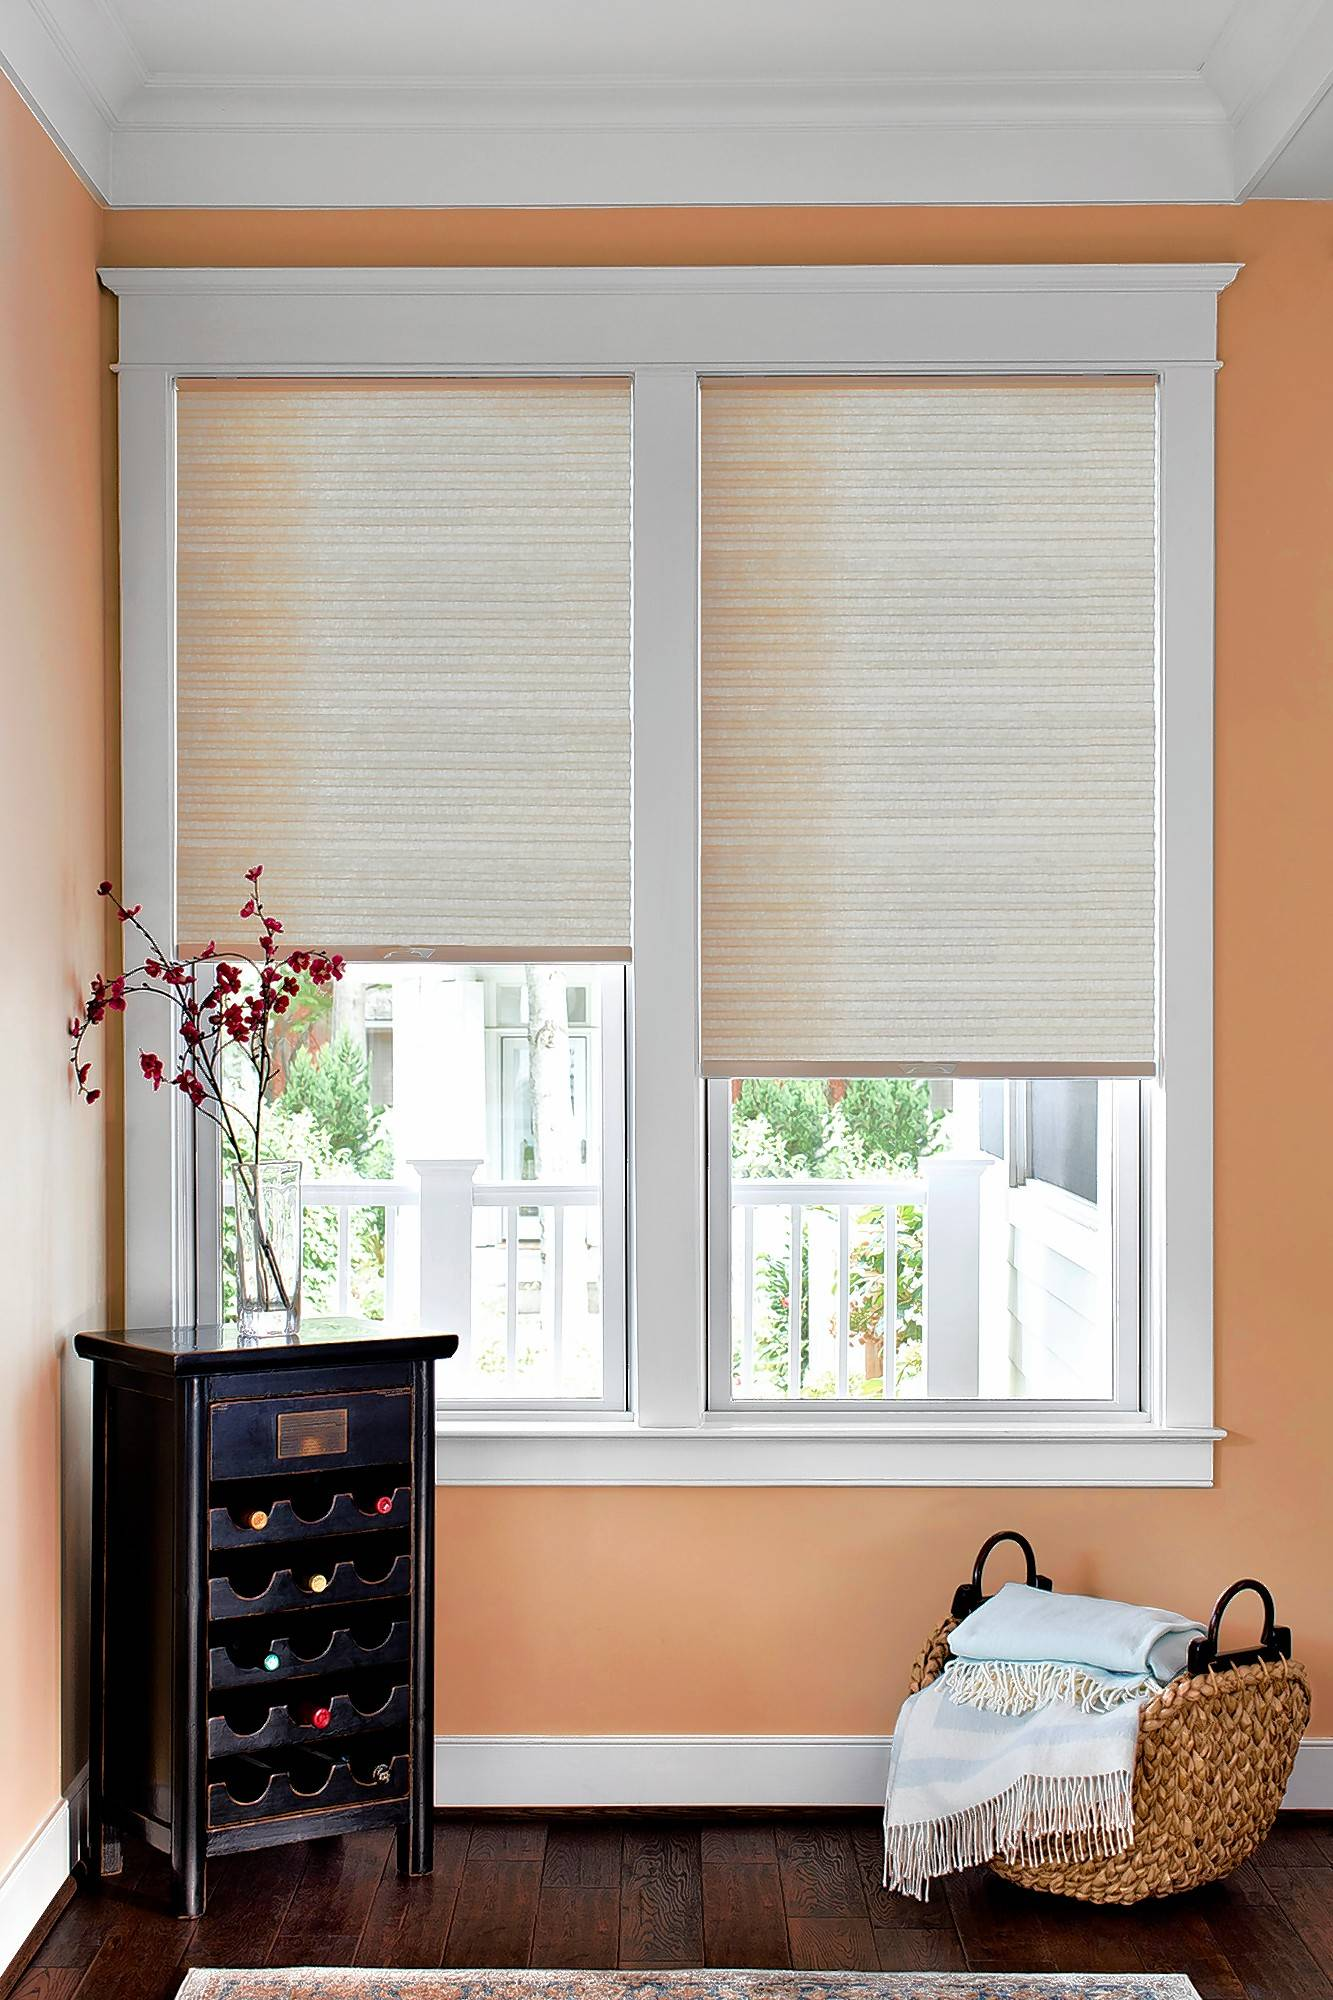 Some types of blinds, such as Next Day Blinds' Honeycomb Shades, allow light to come in while still providing privacy.